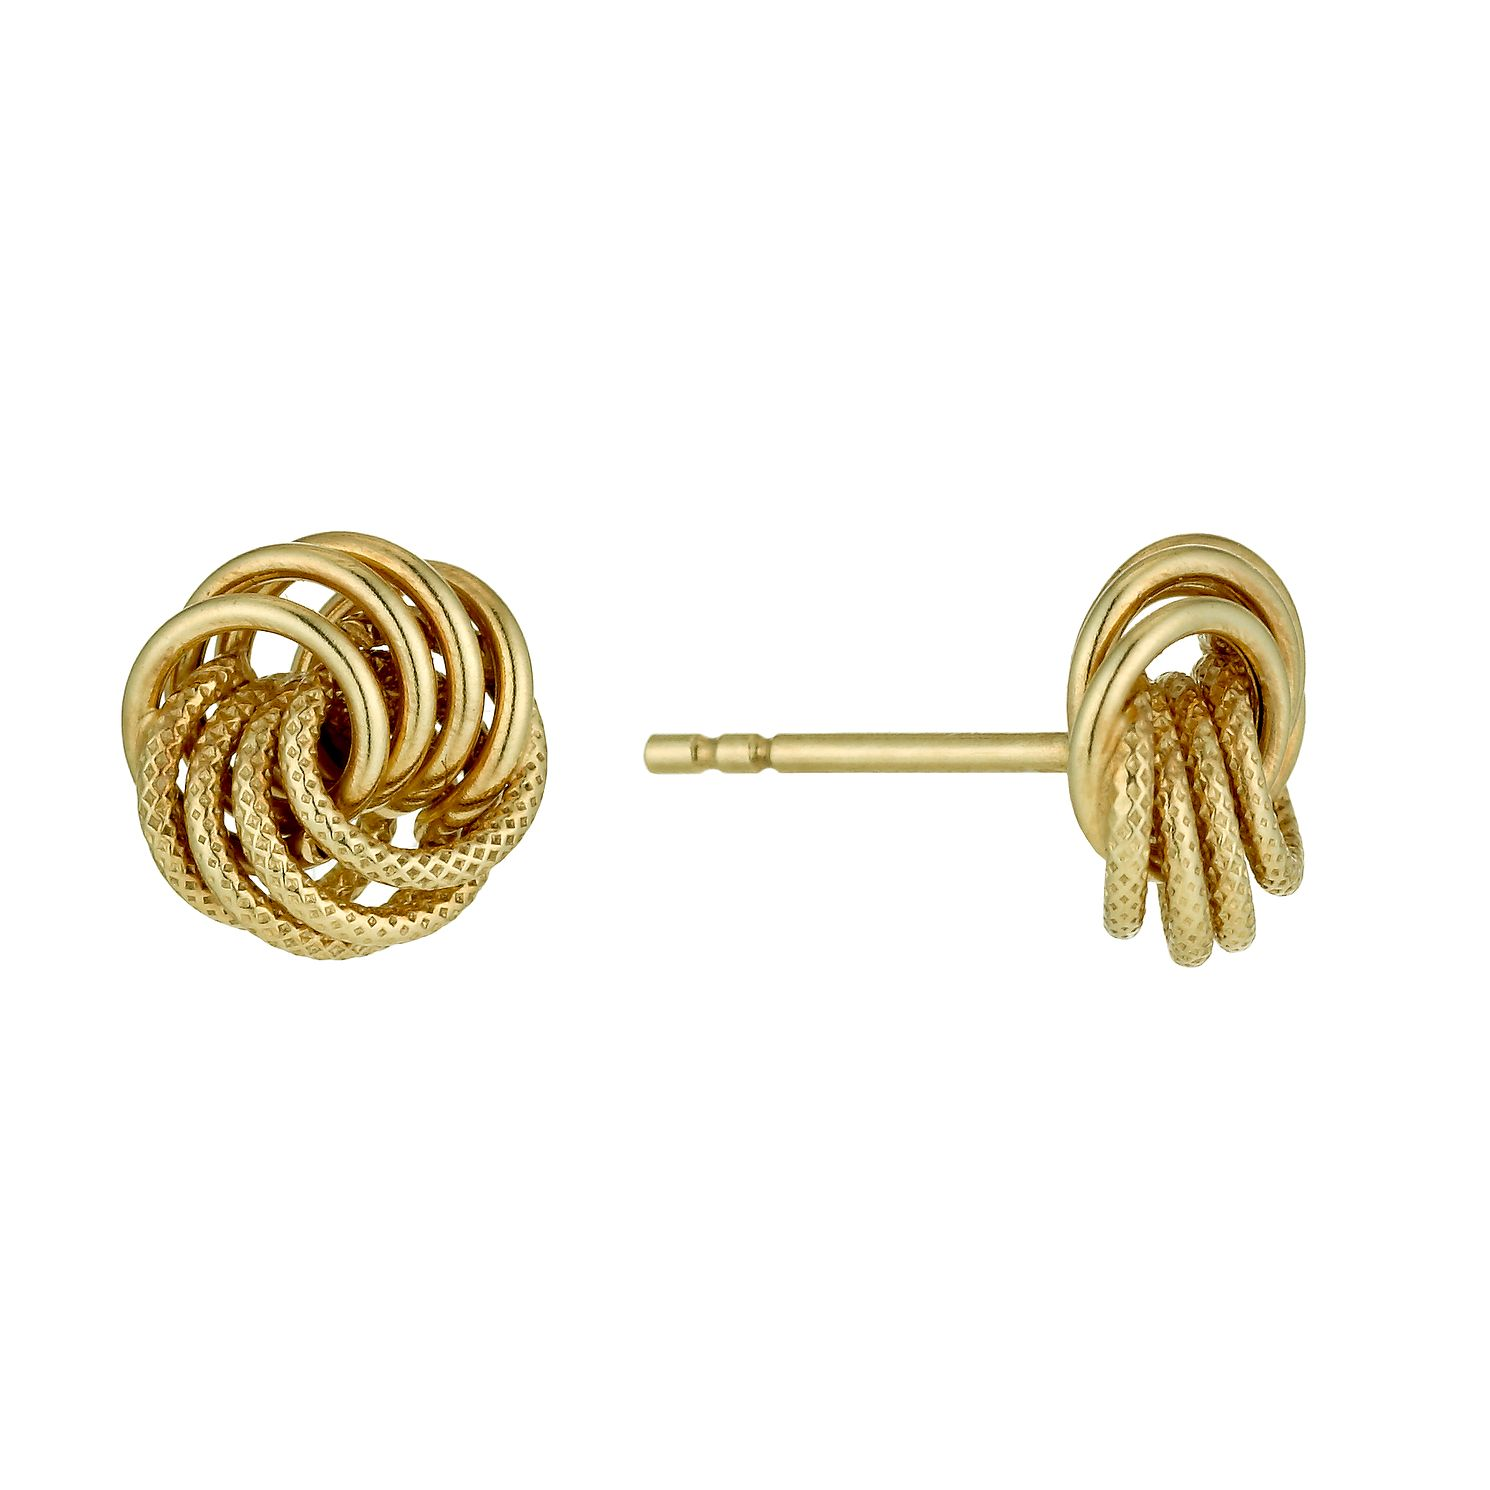 9ct Yellow Gold Knot Stud Earrings 7mm - Product number 1342754